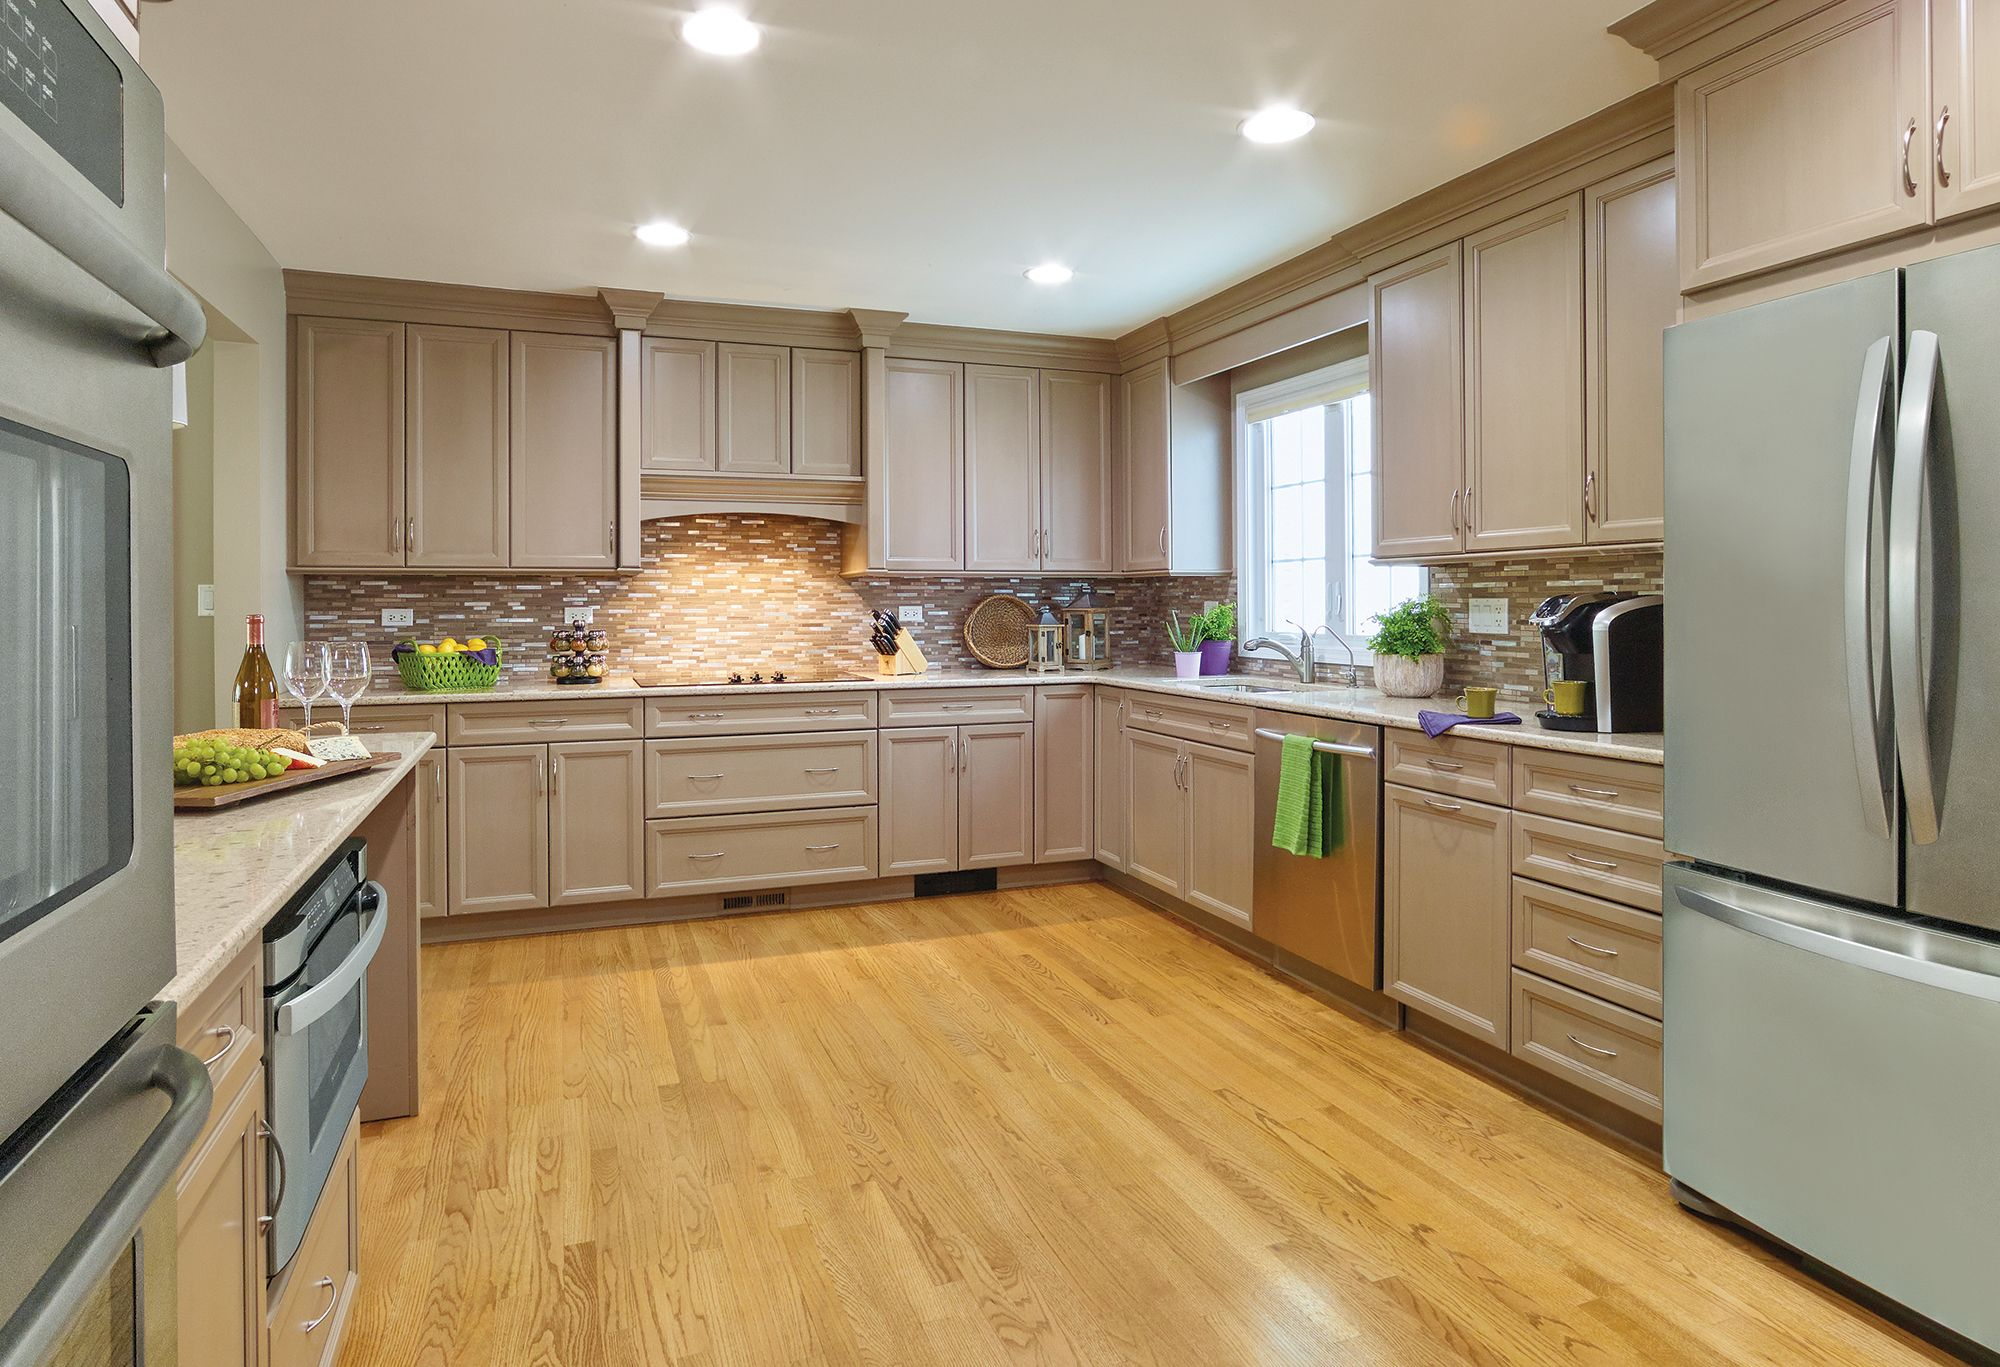 The Kitchen Features Ultracraft Cabinetry S Charlotte Door Style In Maple With Stone Paint And Brown Linen